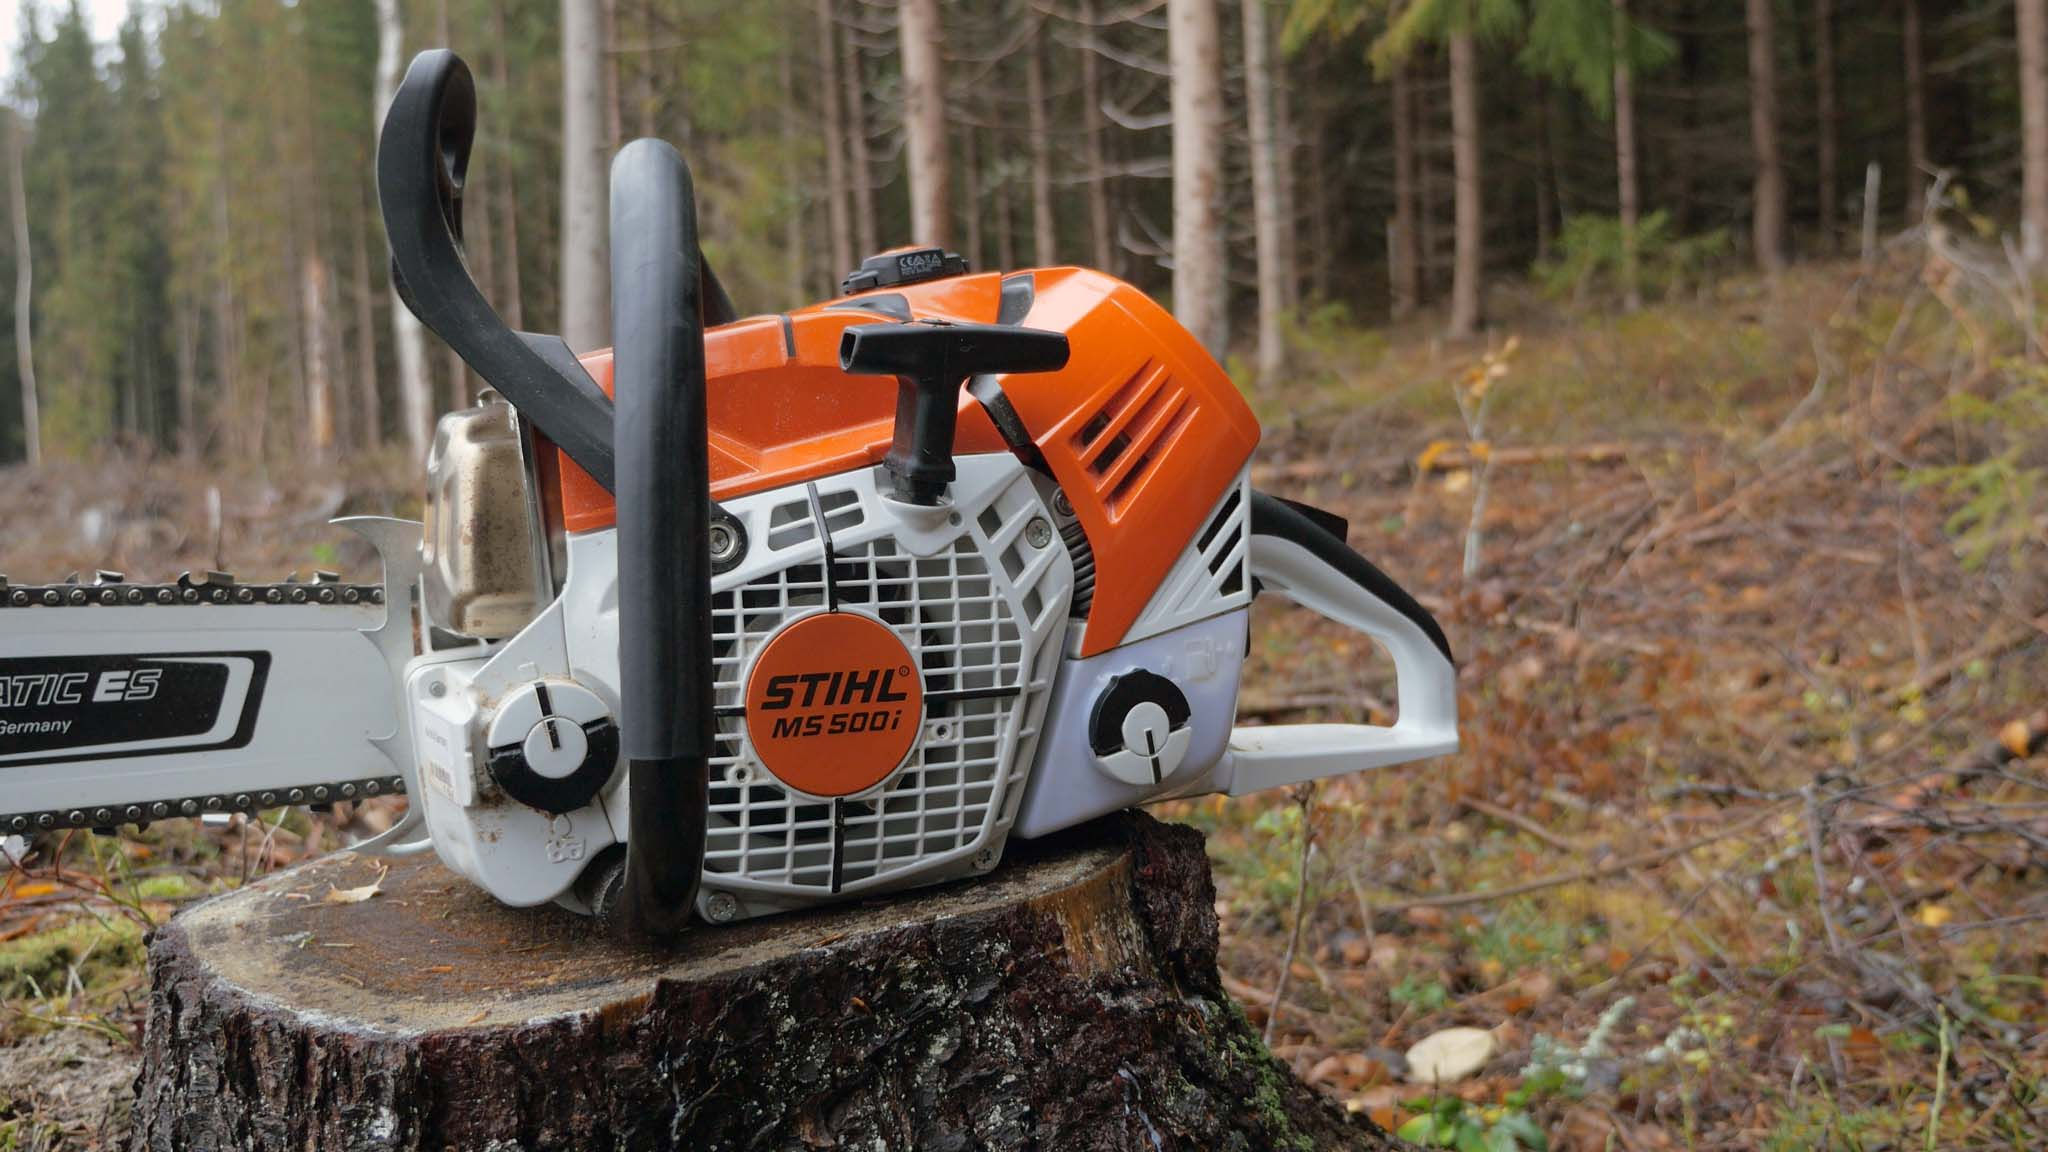 Stihl Ms 500i Test Of The First Chainsaw With Fuel